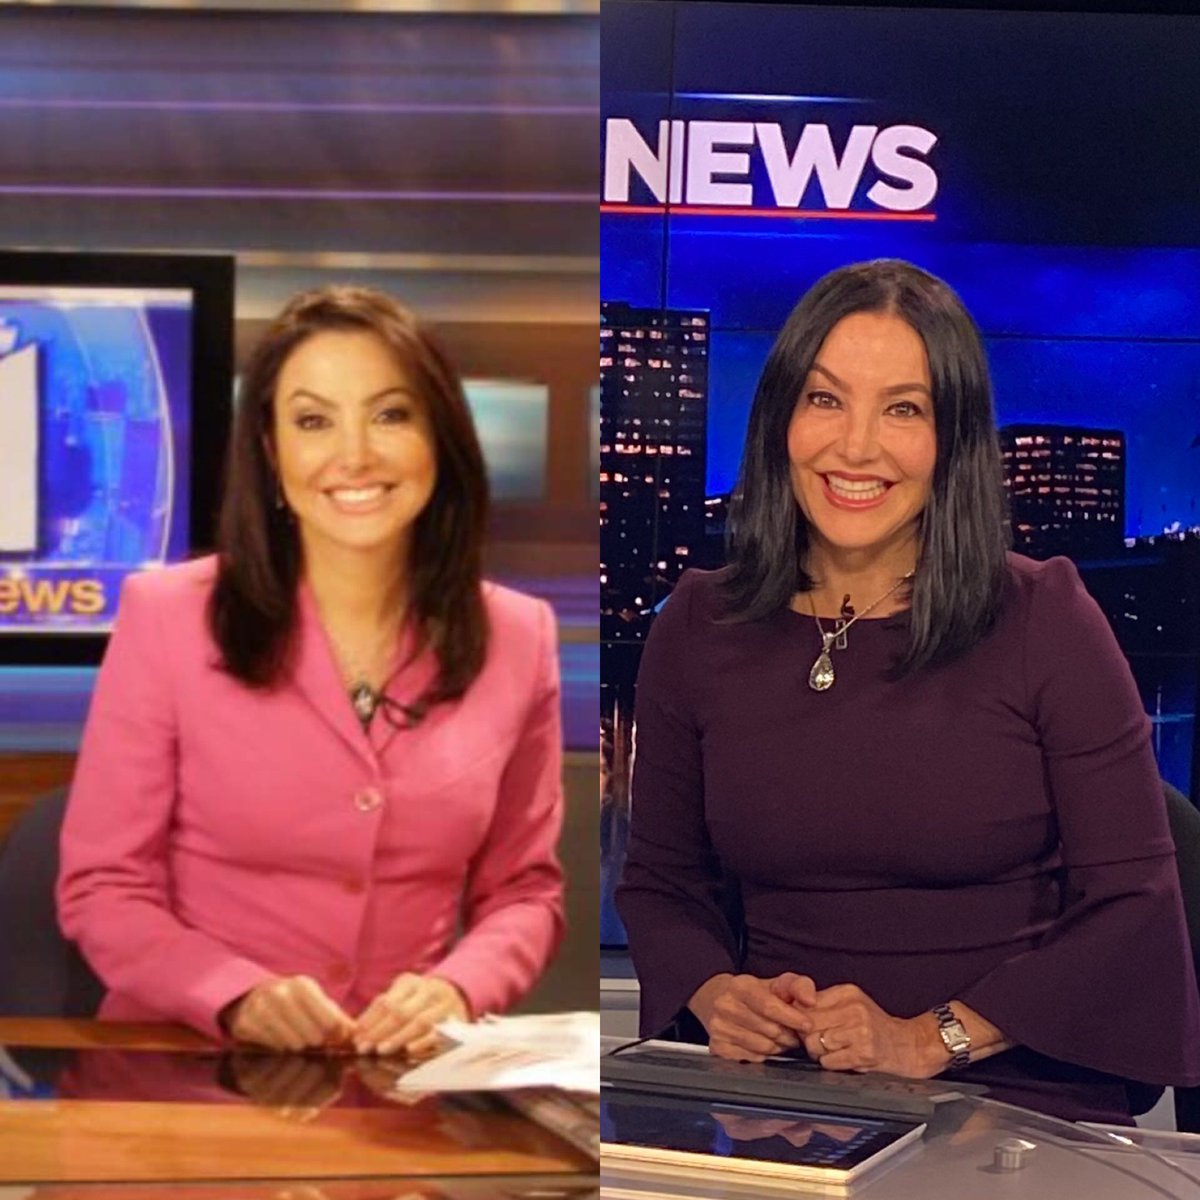 Two pics 15 years apart to the day. Left is me anchoring the news at @PIX11News in #newyork & right is at @WFSBnews in #connecticut. Marriage & motherhood are just a few of the things that have changed. A little older & wiser. Time has a way of showing us what really matters. ❤️ https://t.co/T4NScbgQBc